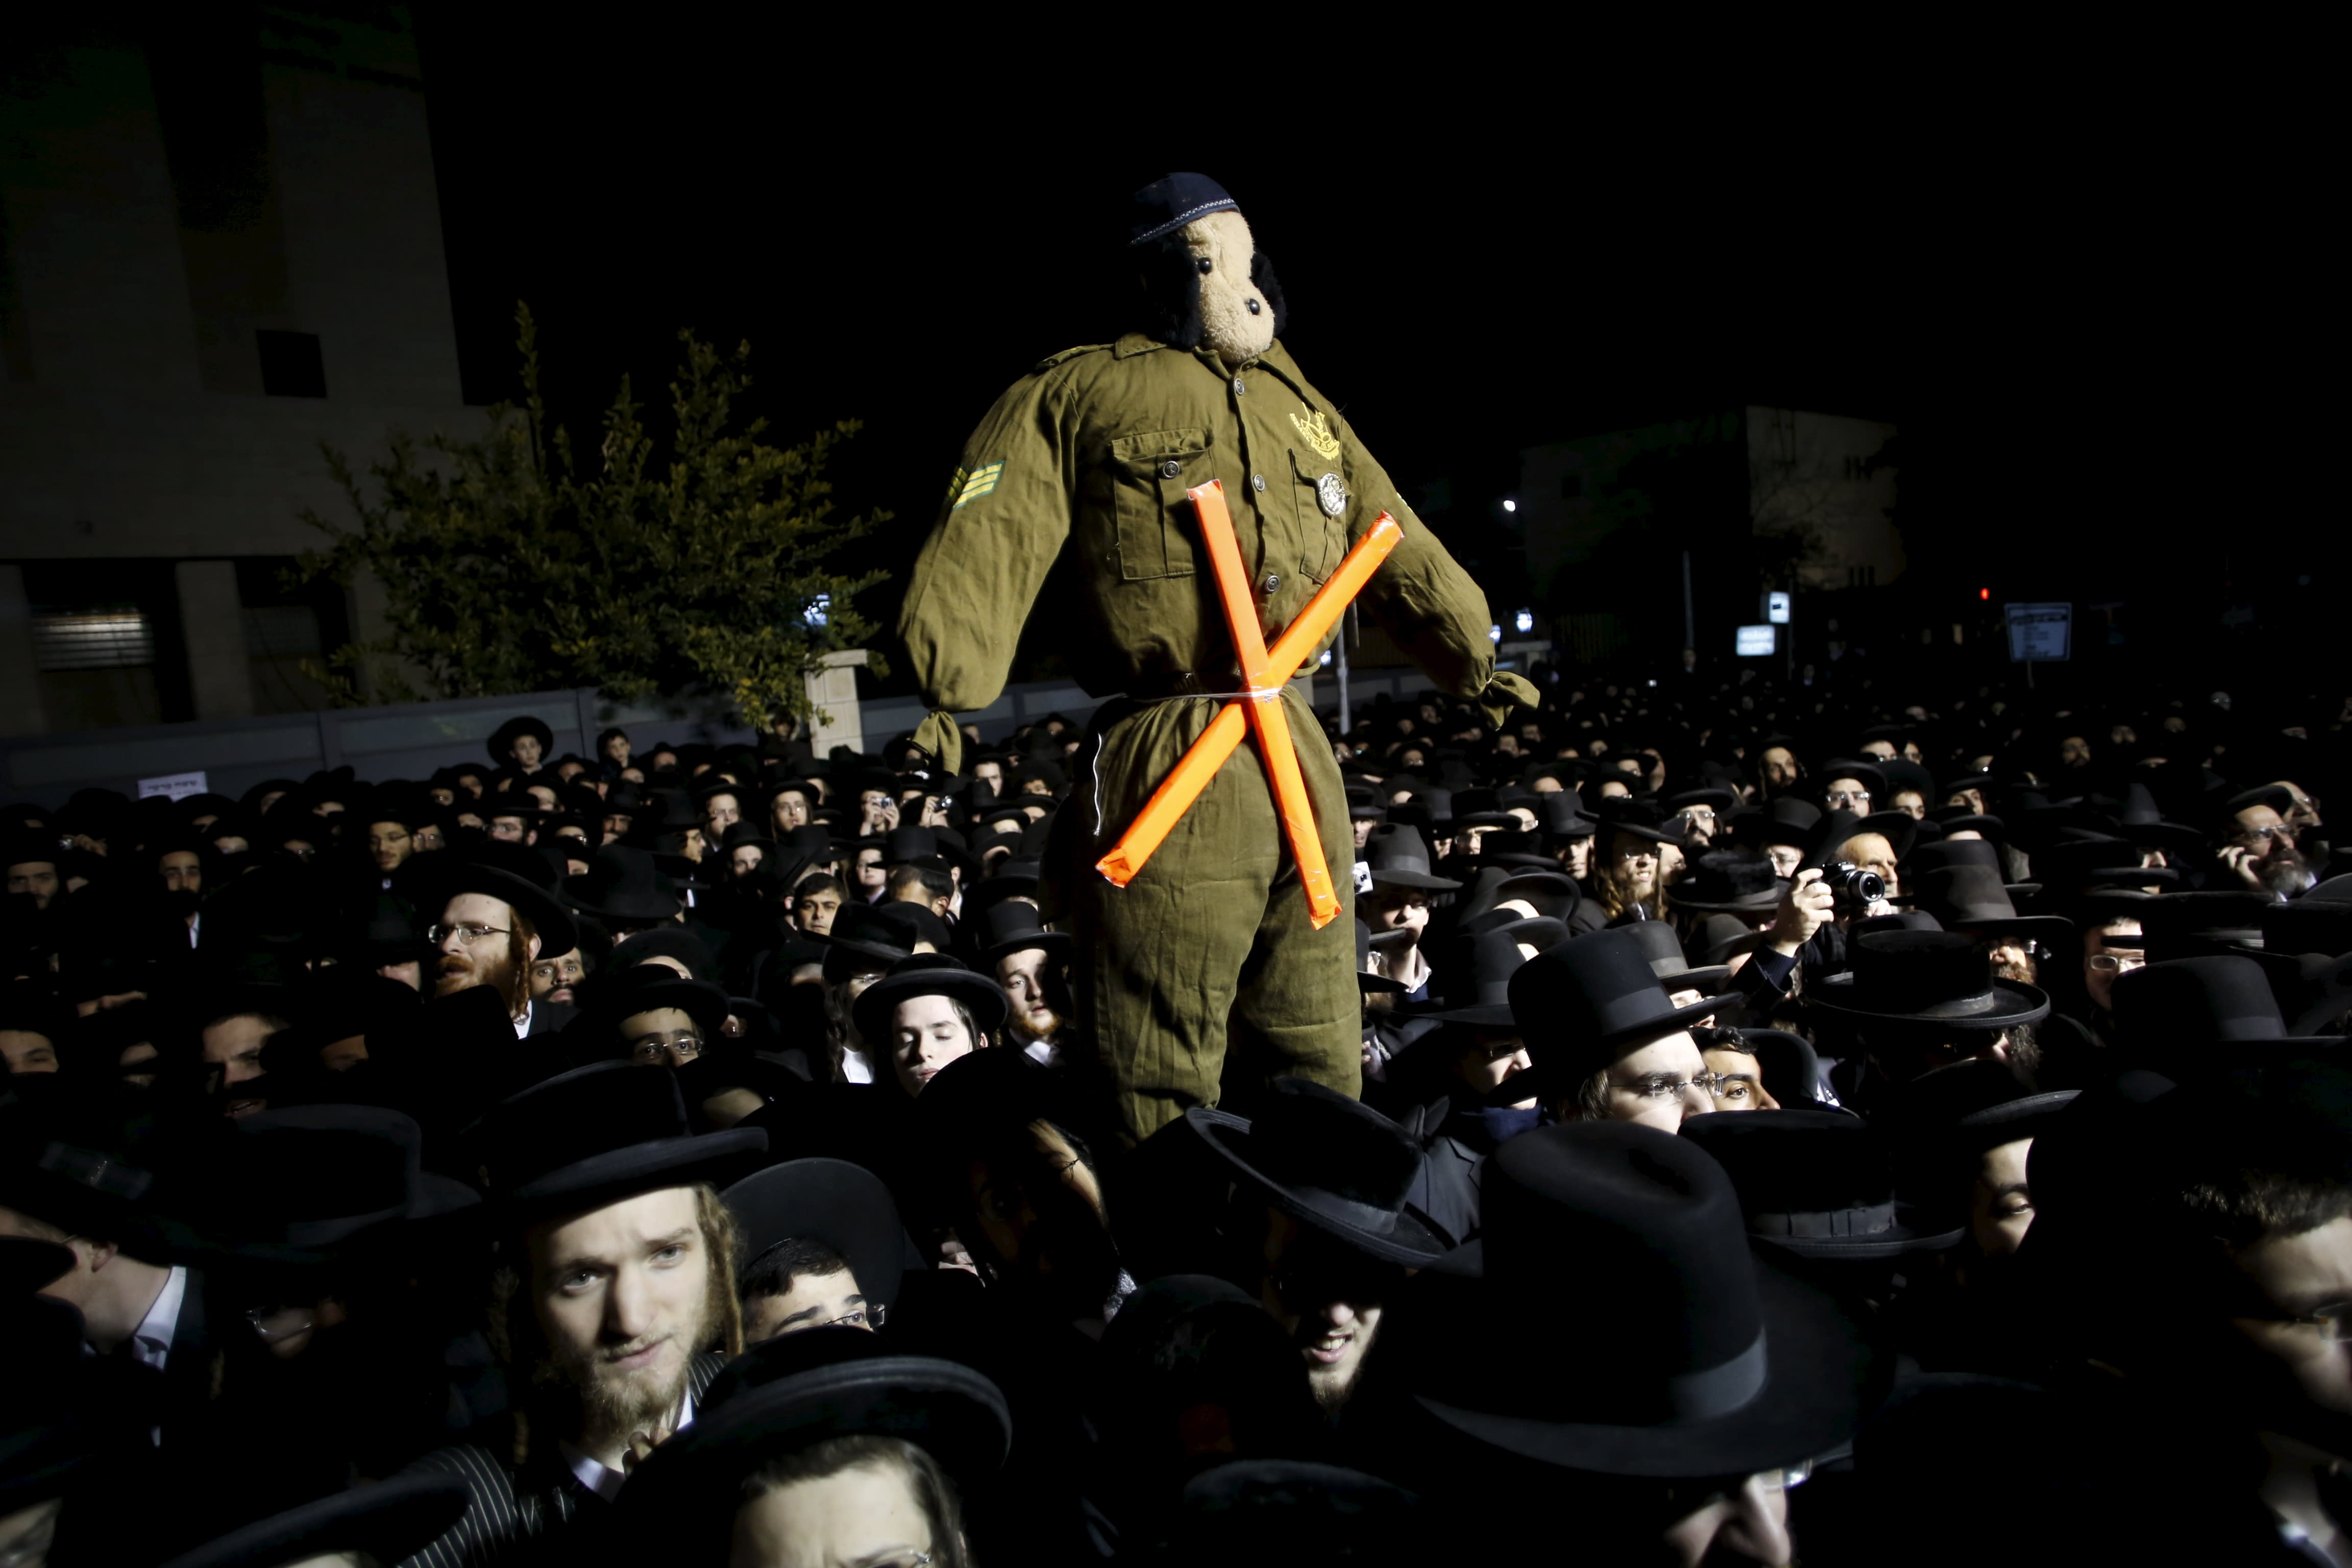 Ultra-Orthodox Jews attend a protest against a law calling for members of their community to serve in the army. (Baz Ratner/REUTERS)